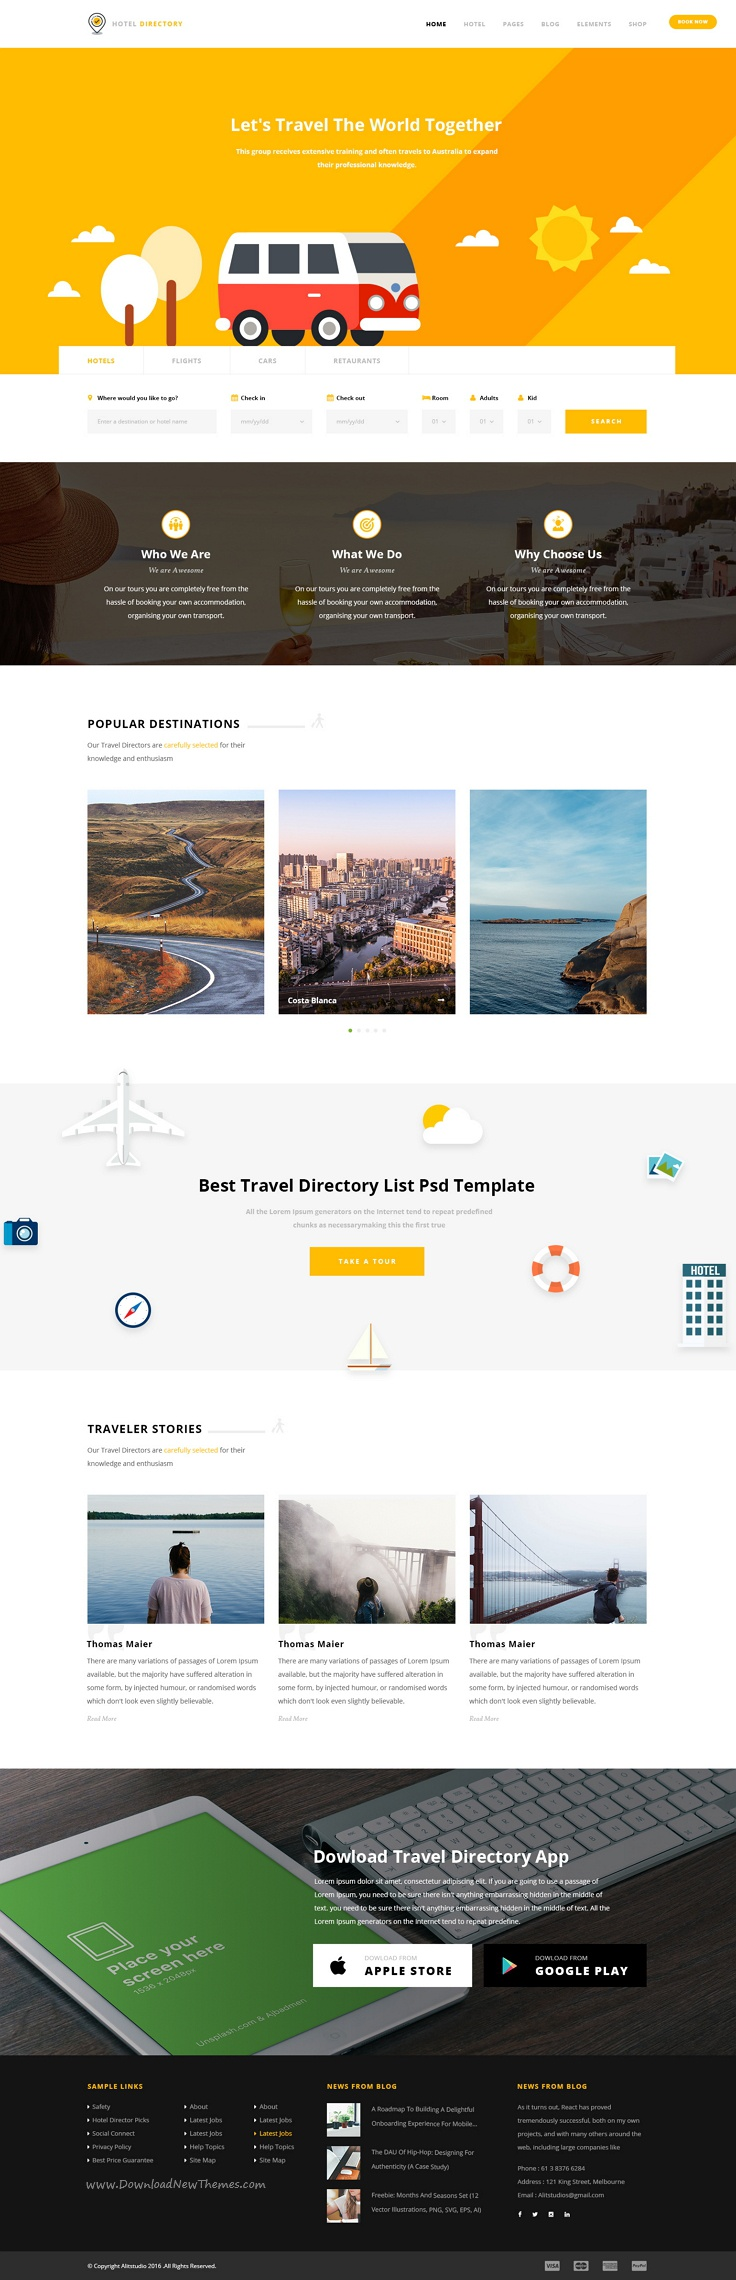 Hotel directory is a modern and perfect psd template for hotels tours